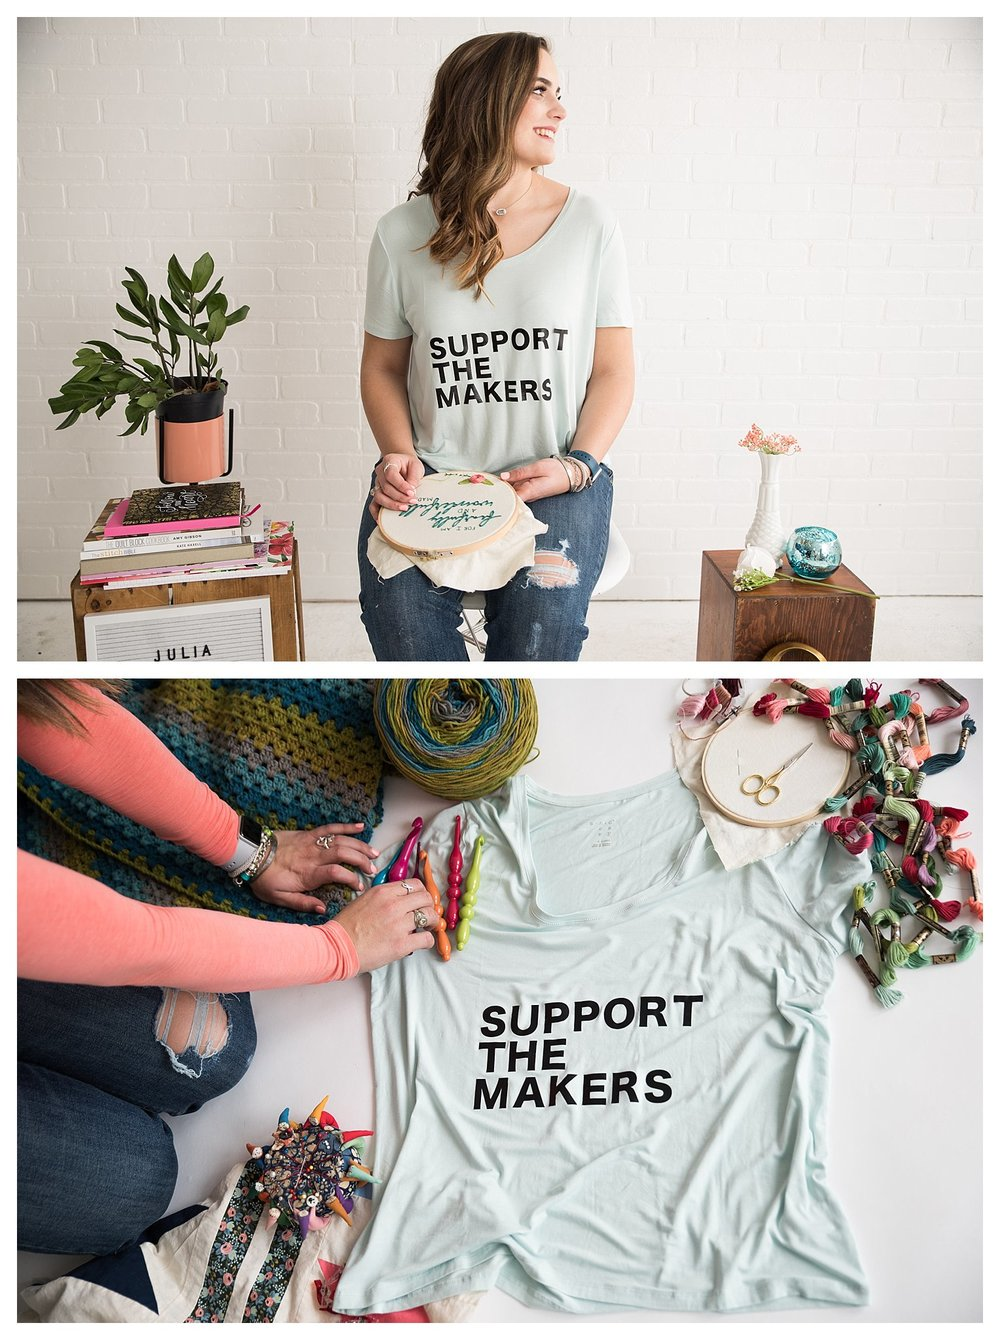 support the makers shirt, t-shirt design, small business, boutique photos, best branding pictures ideas